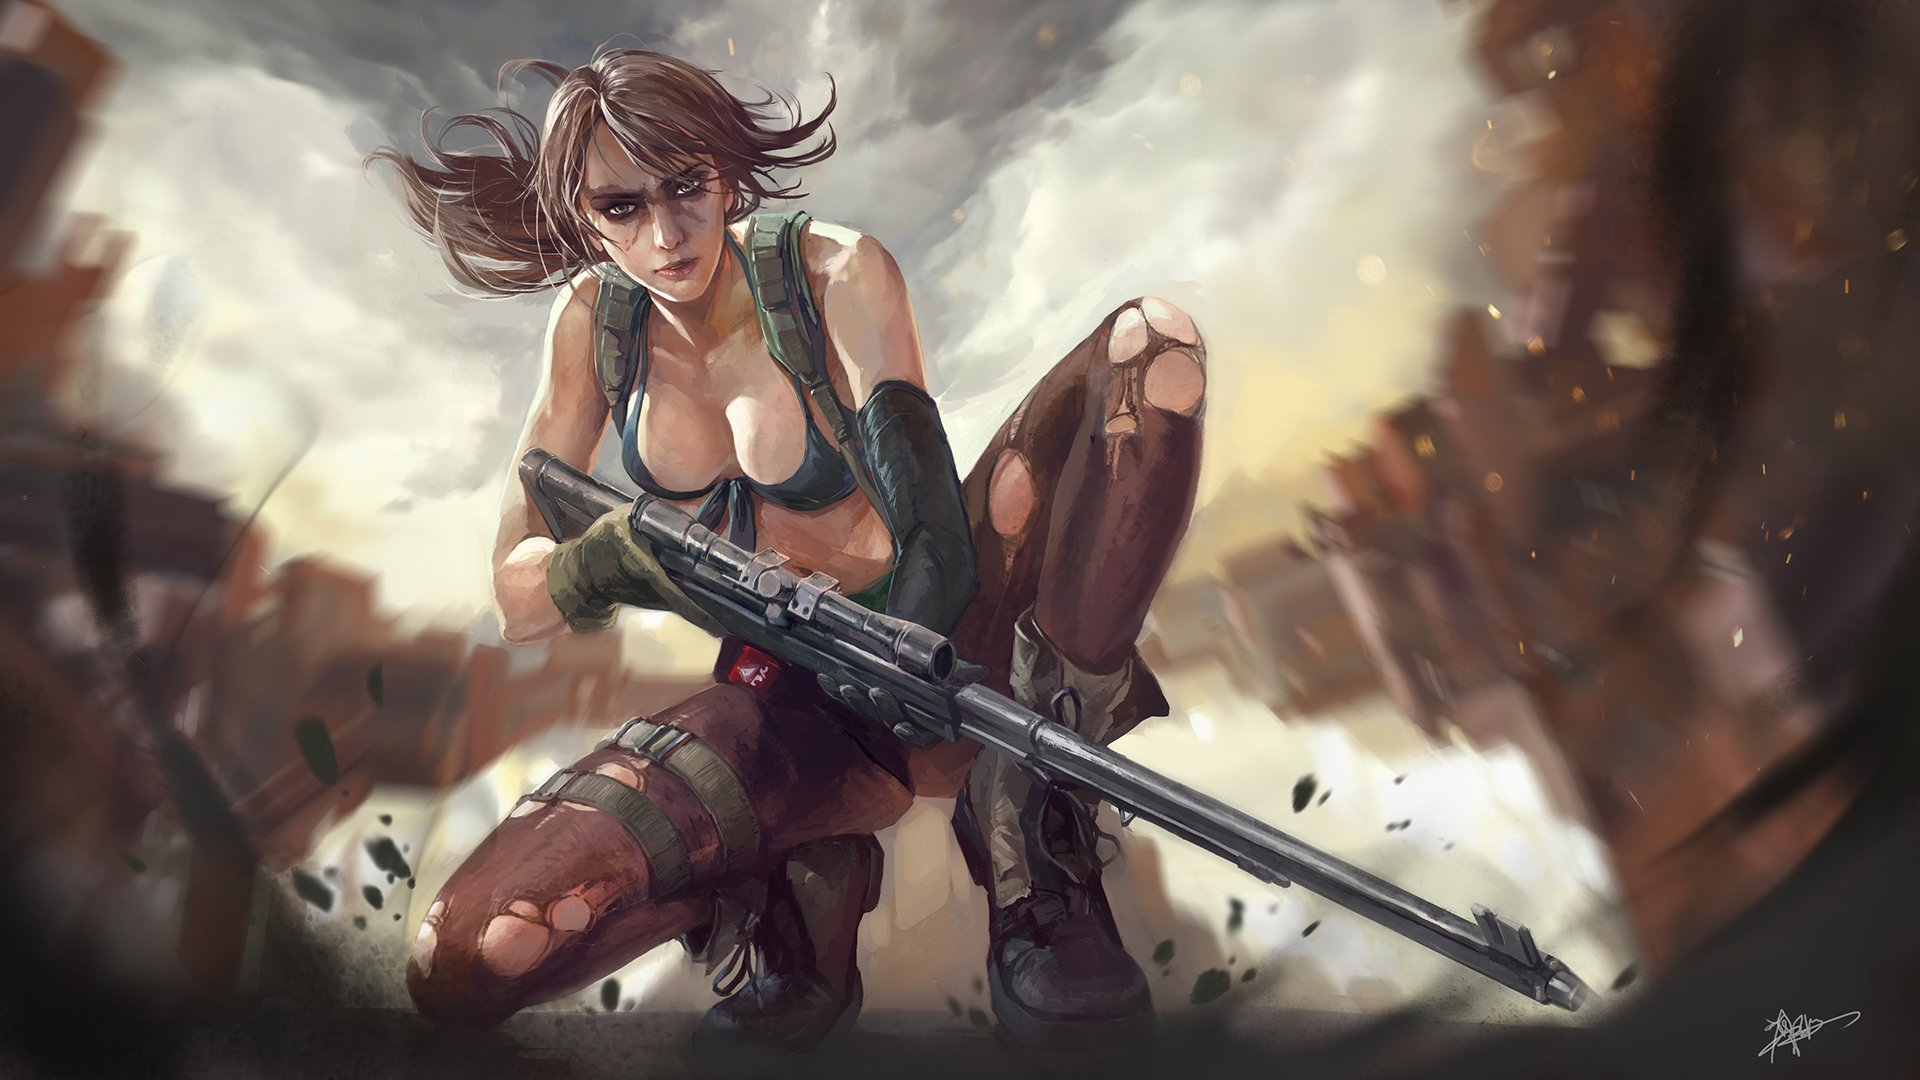 161 Metal Gear Solid V The Phantom Pain Hd Wallpapers